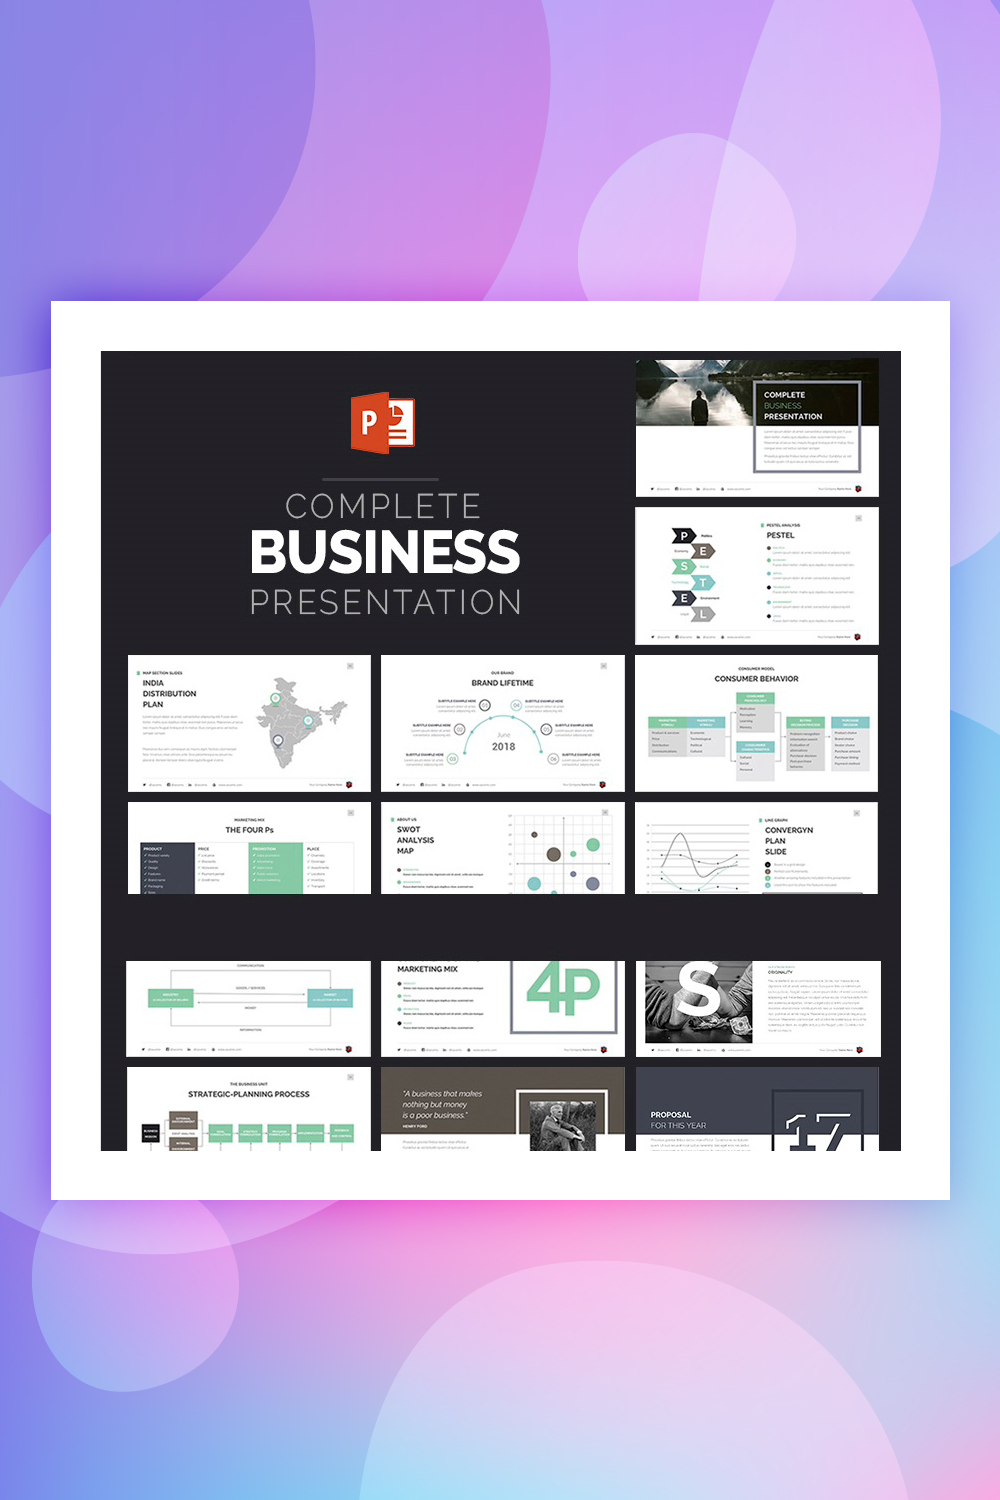 Complete Business Presentation PowerPoint Template